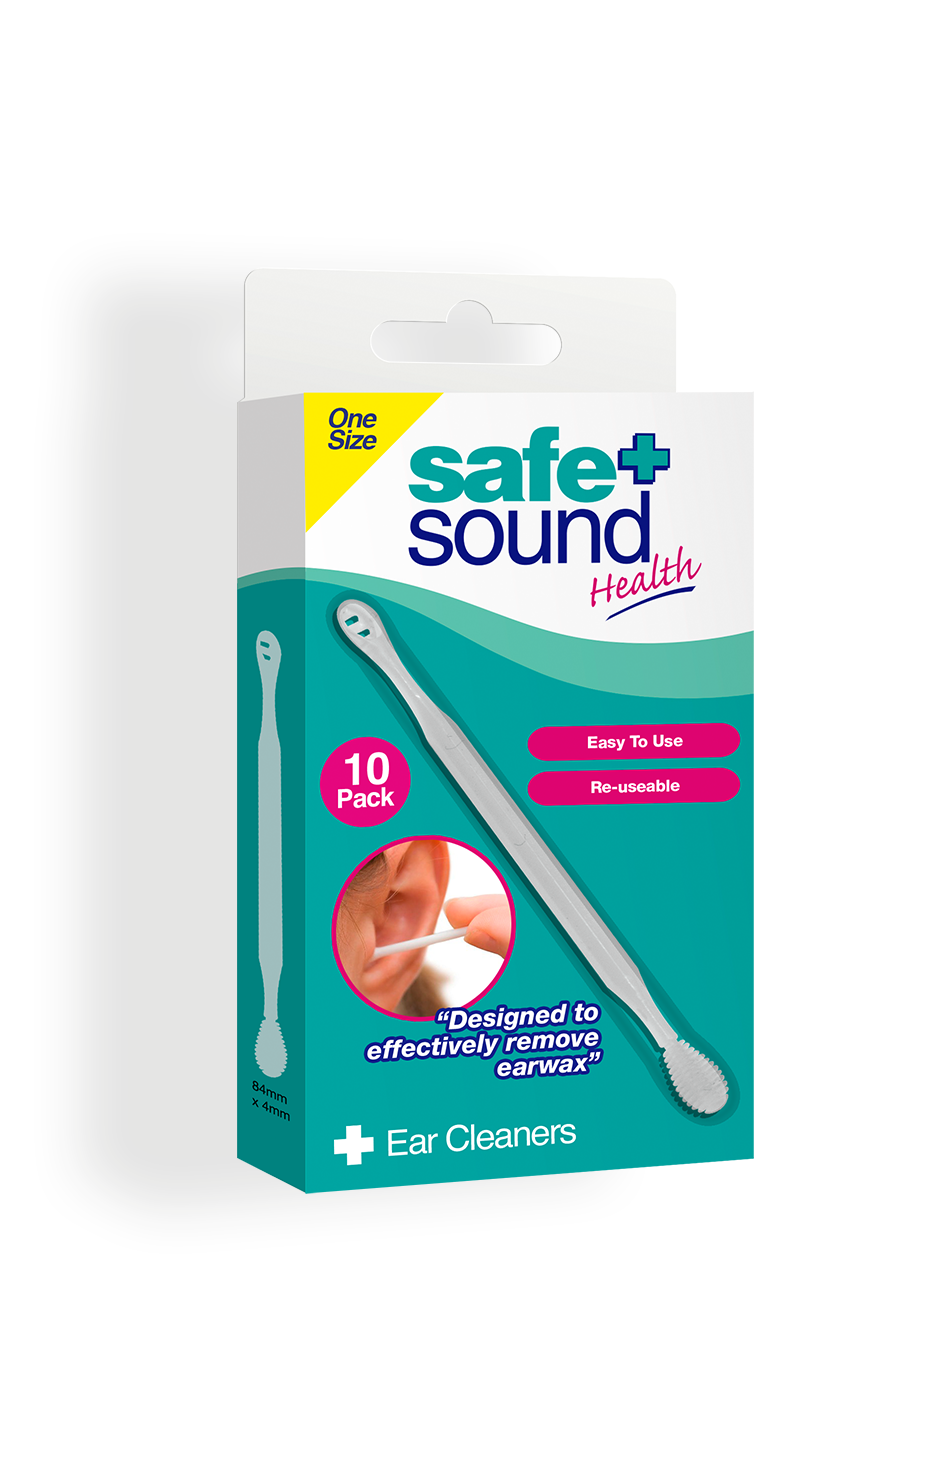 Safe and Sound Health's Reusable Earwax Cleaners